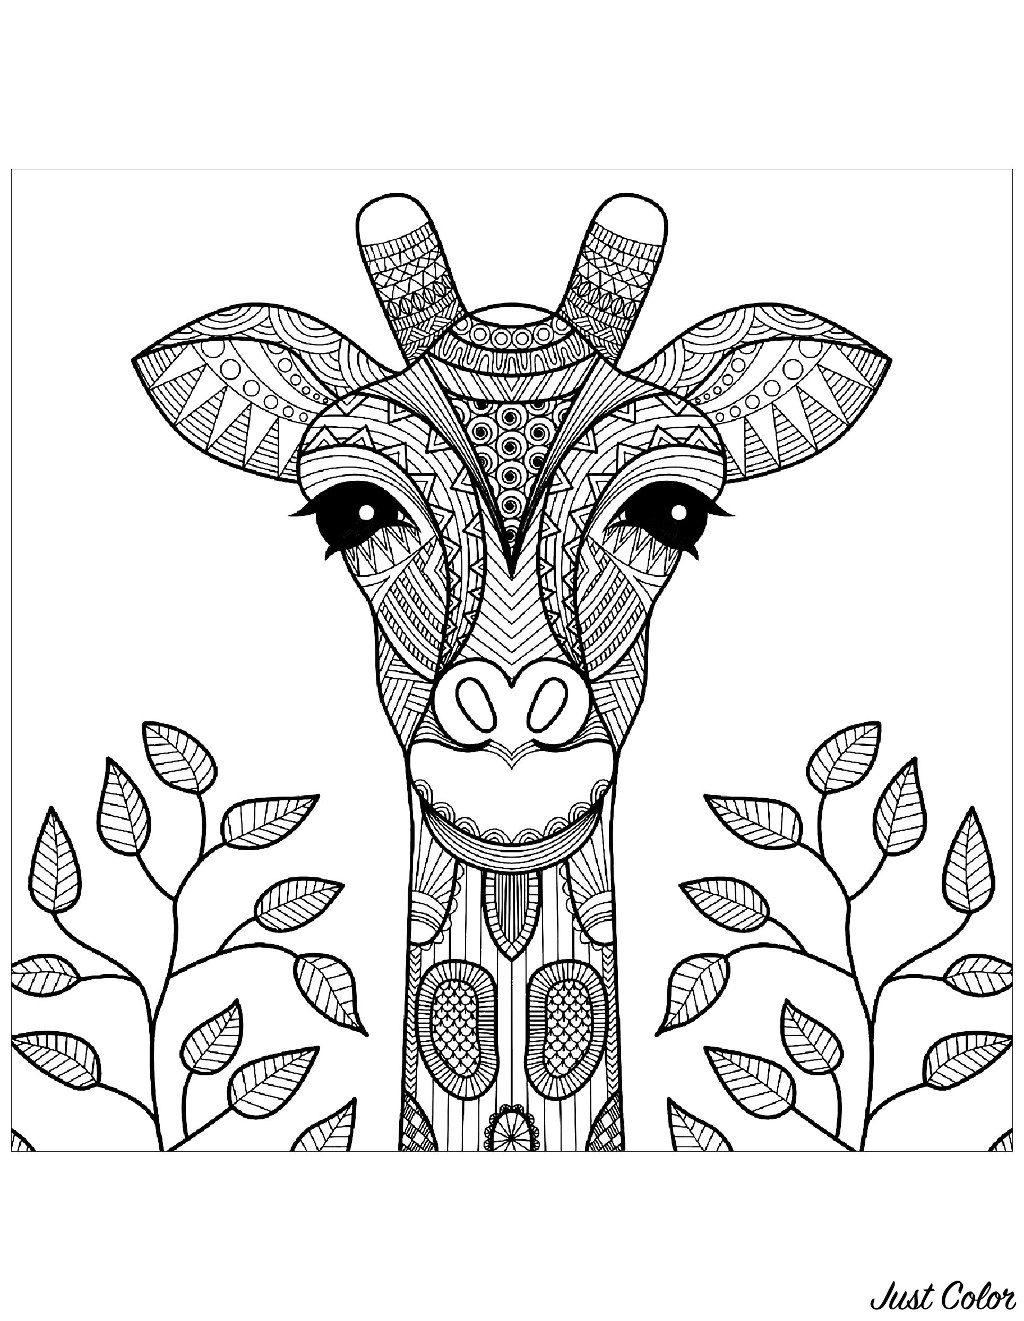 Simple Giraffes coloring page to print and color for free